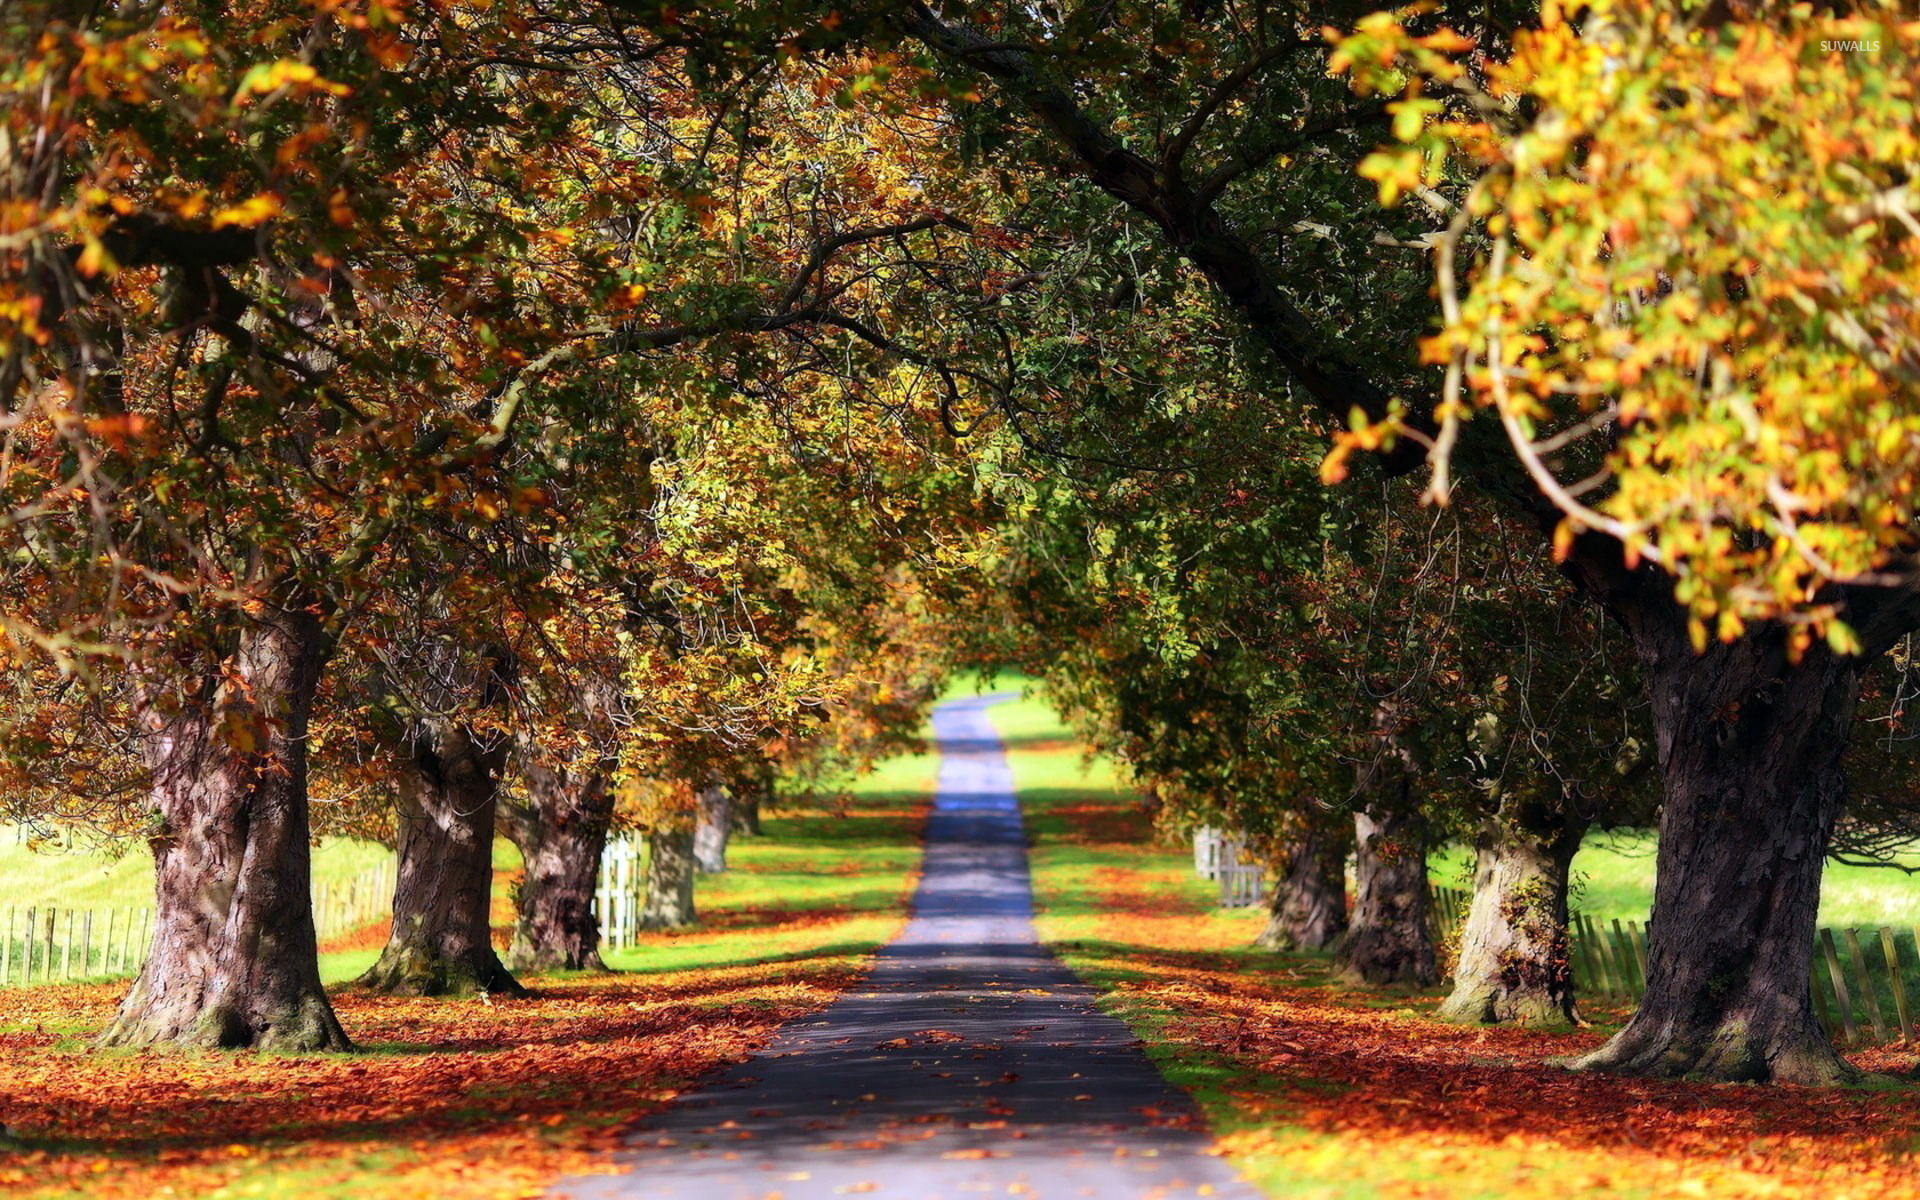 Fall Wallpaper For Windows 10 Path Between The Trees Wallpaper Nature Wallpapers 15630